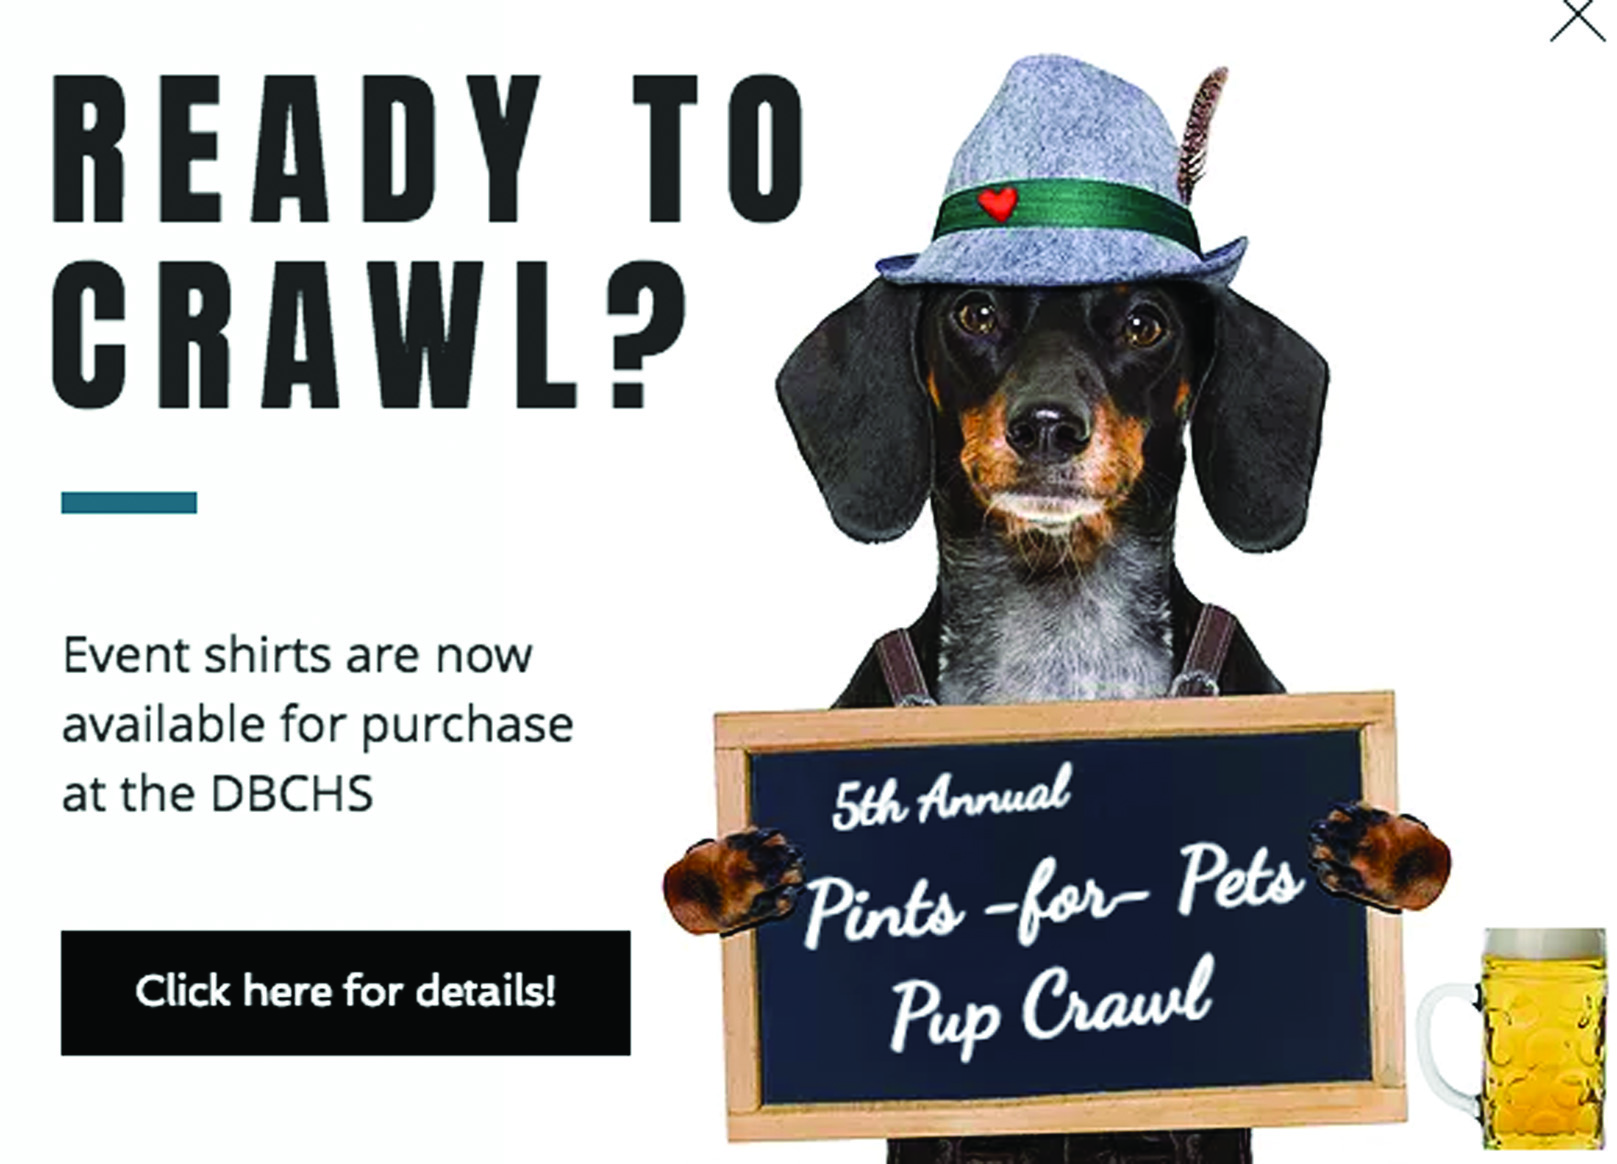 Pup Crawl Returns Saturday To Benefit Danville Boyle County Humane Society The Advocate